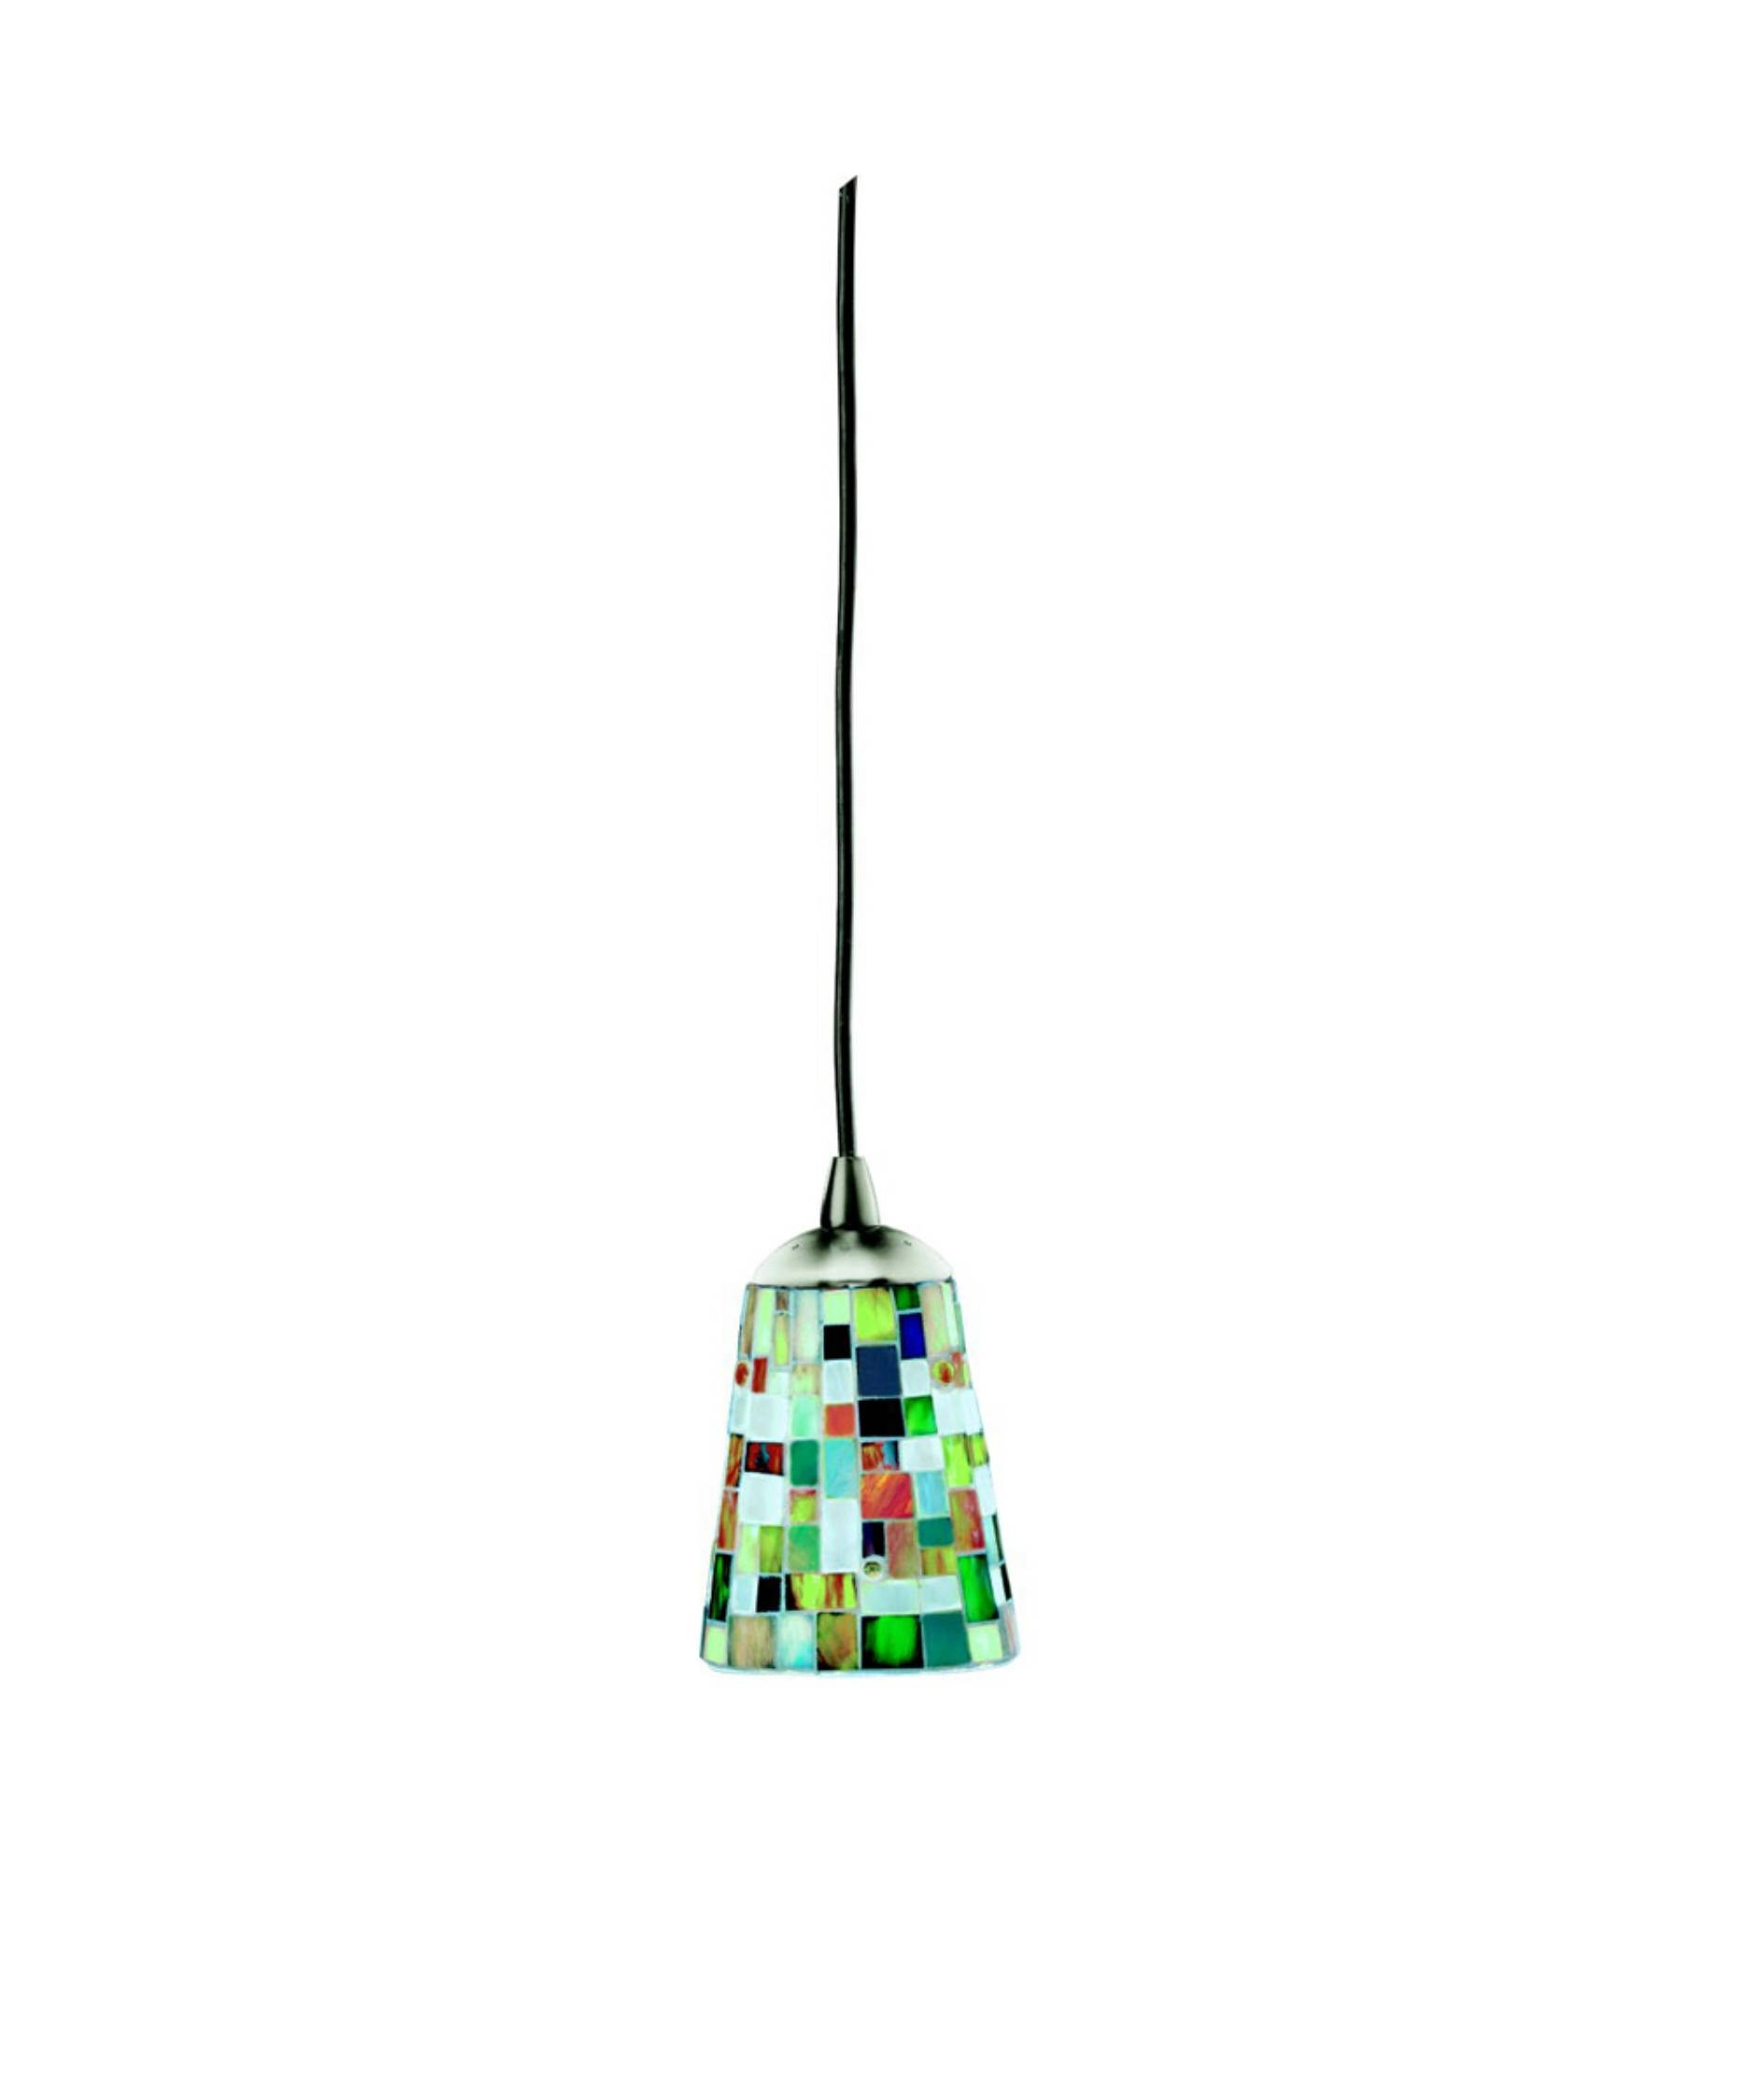 Stained Glass Pendant Light - Baby-Exit regarding Stained Glass Pendant Lights (Image 8 of 15)